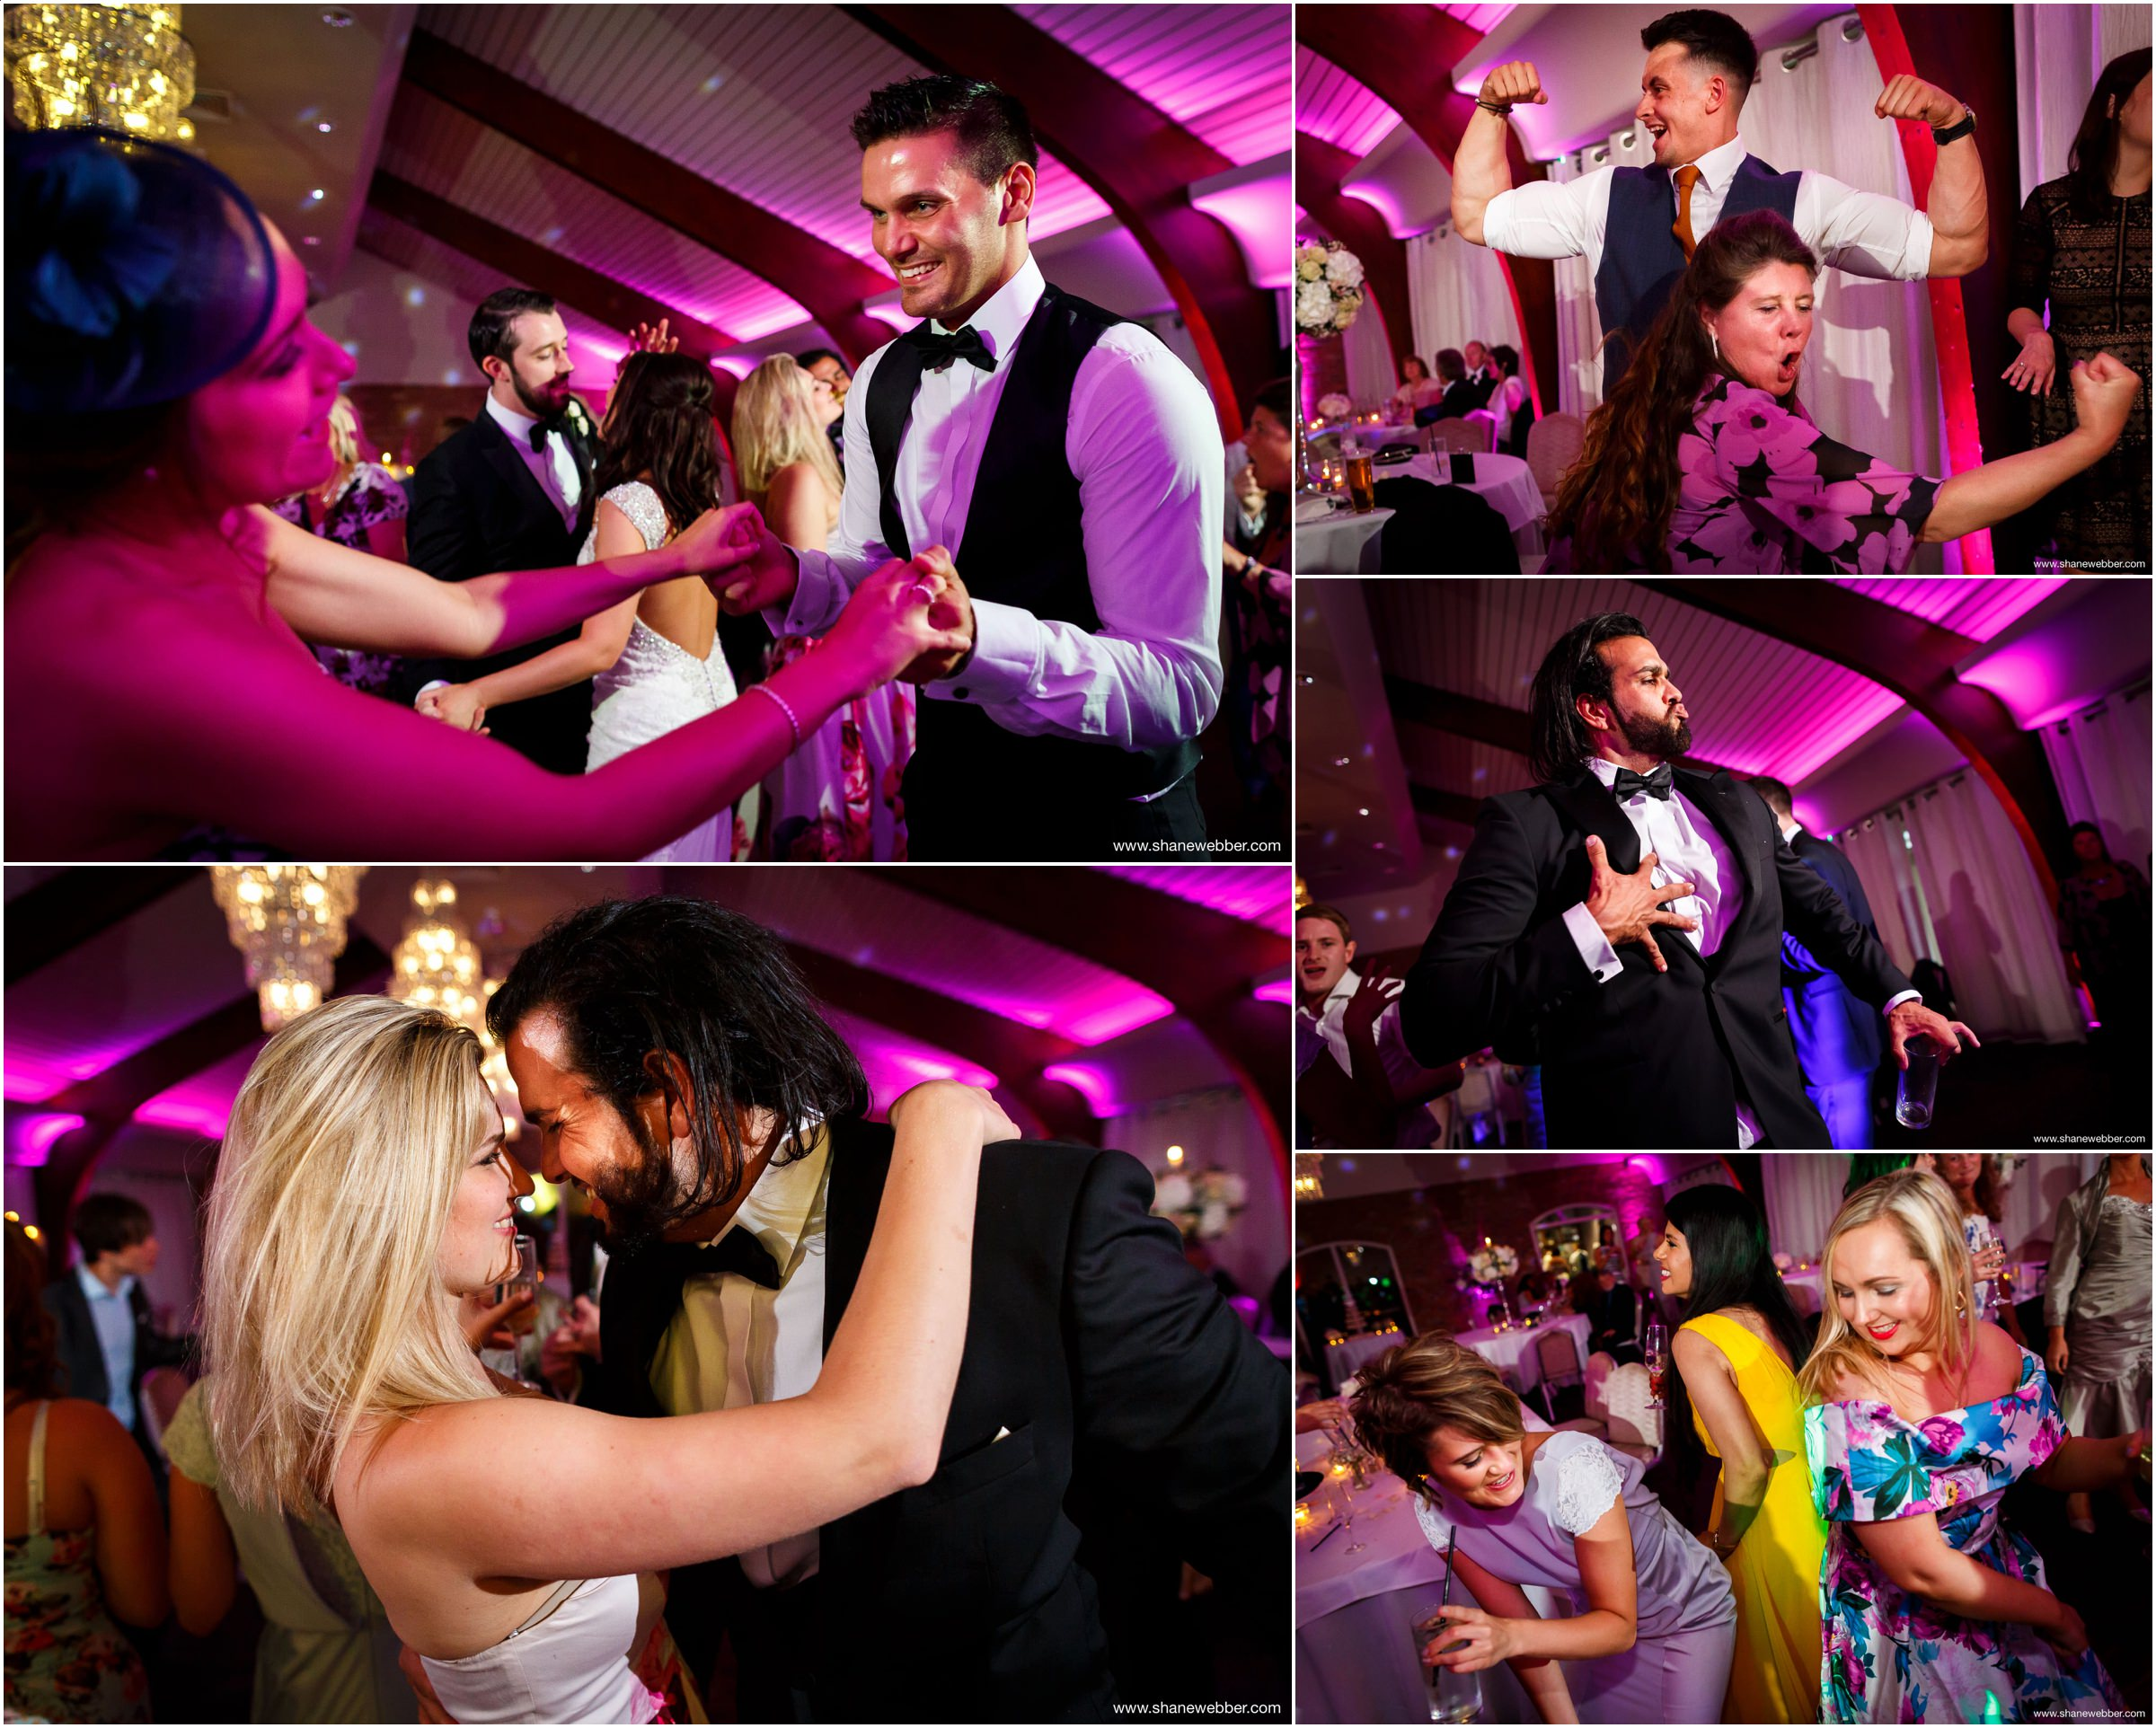 Wedding party photos at Colshaw Hall